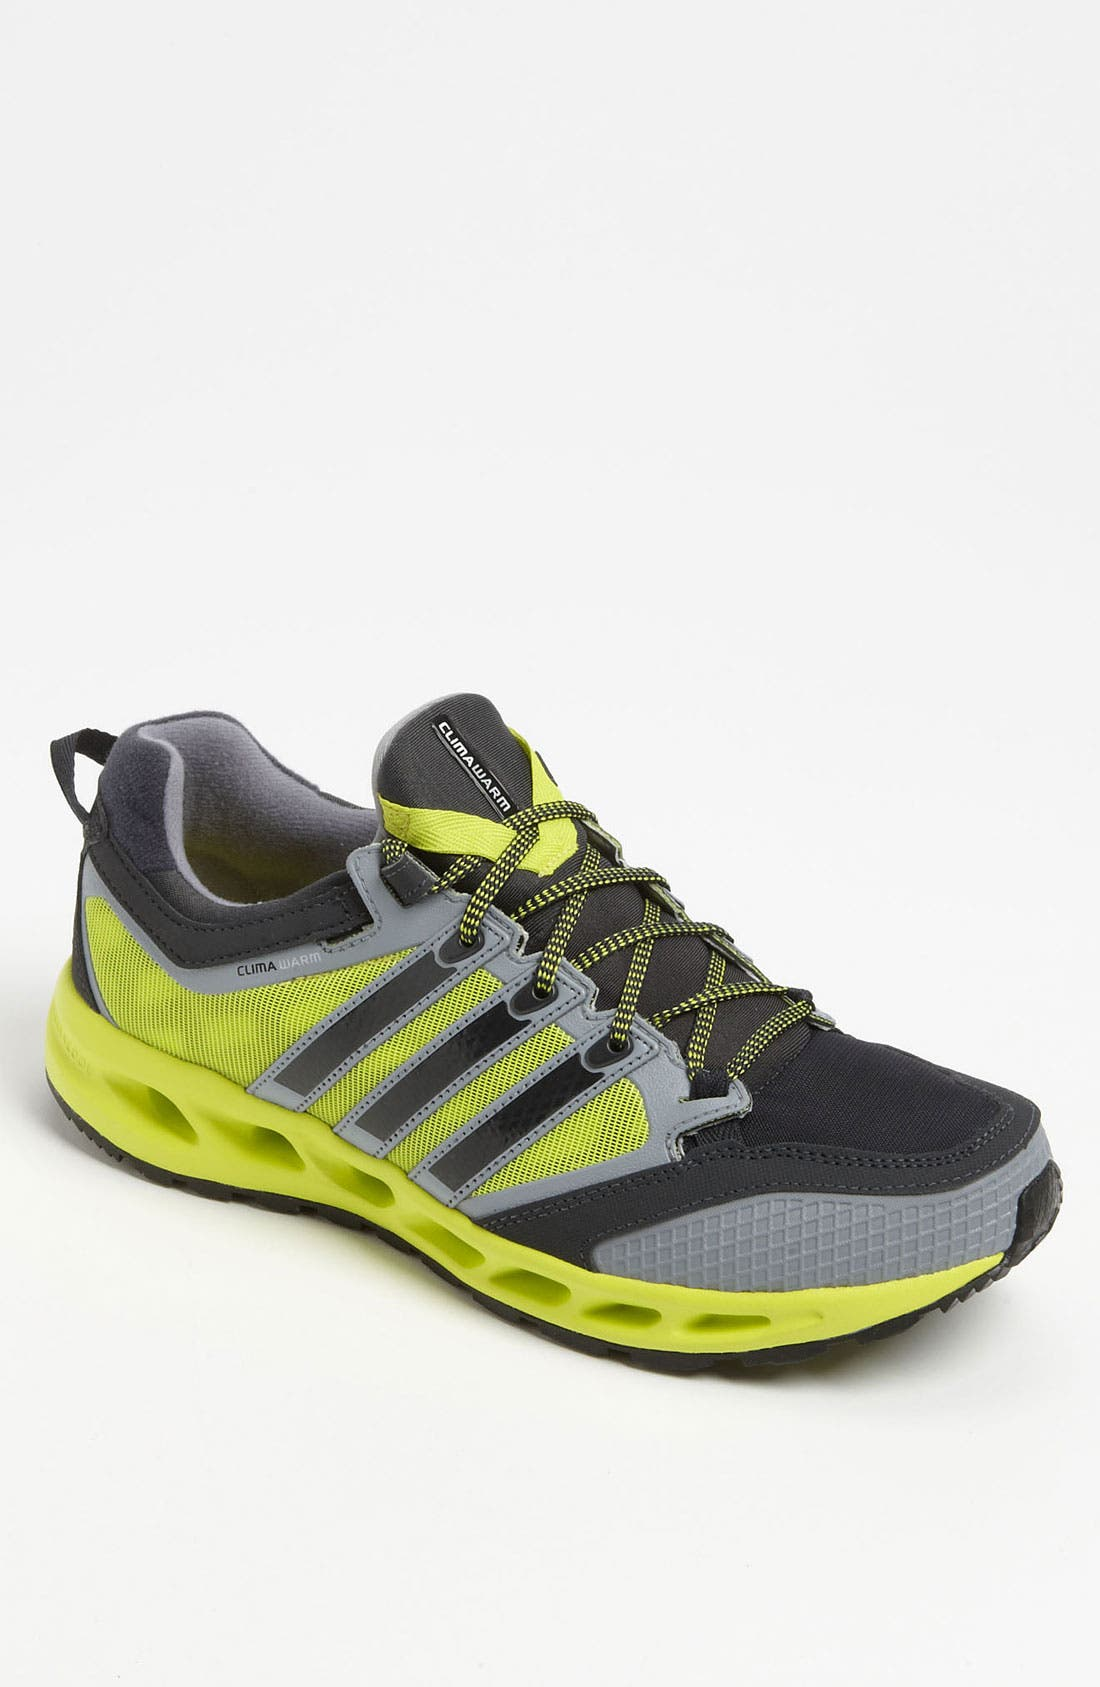 Main Image - adidas 'Tempest' Running Shoe (Men)